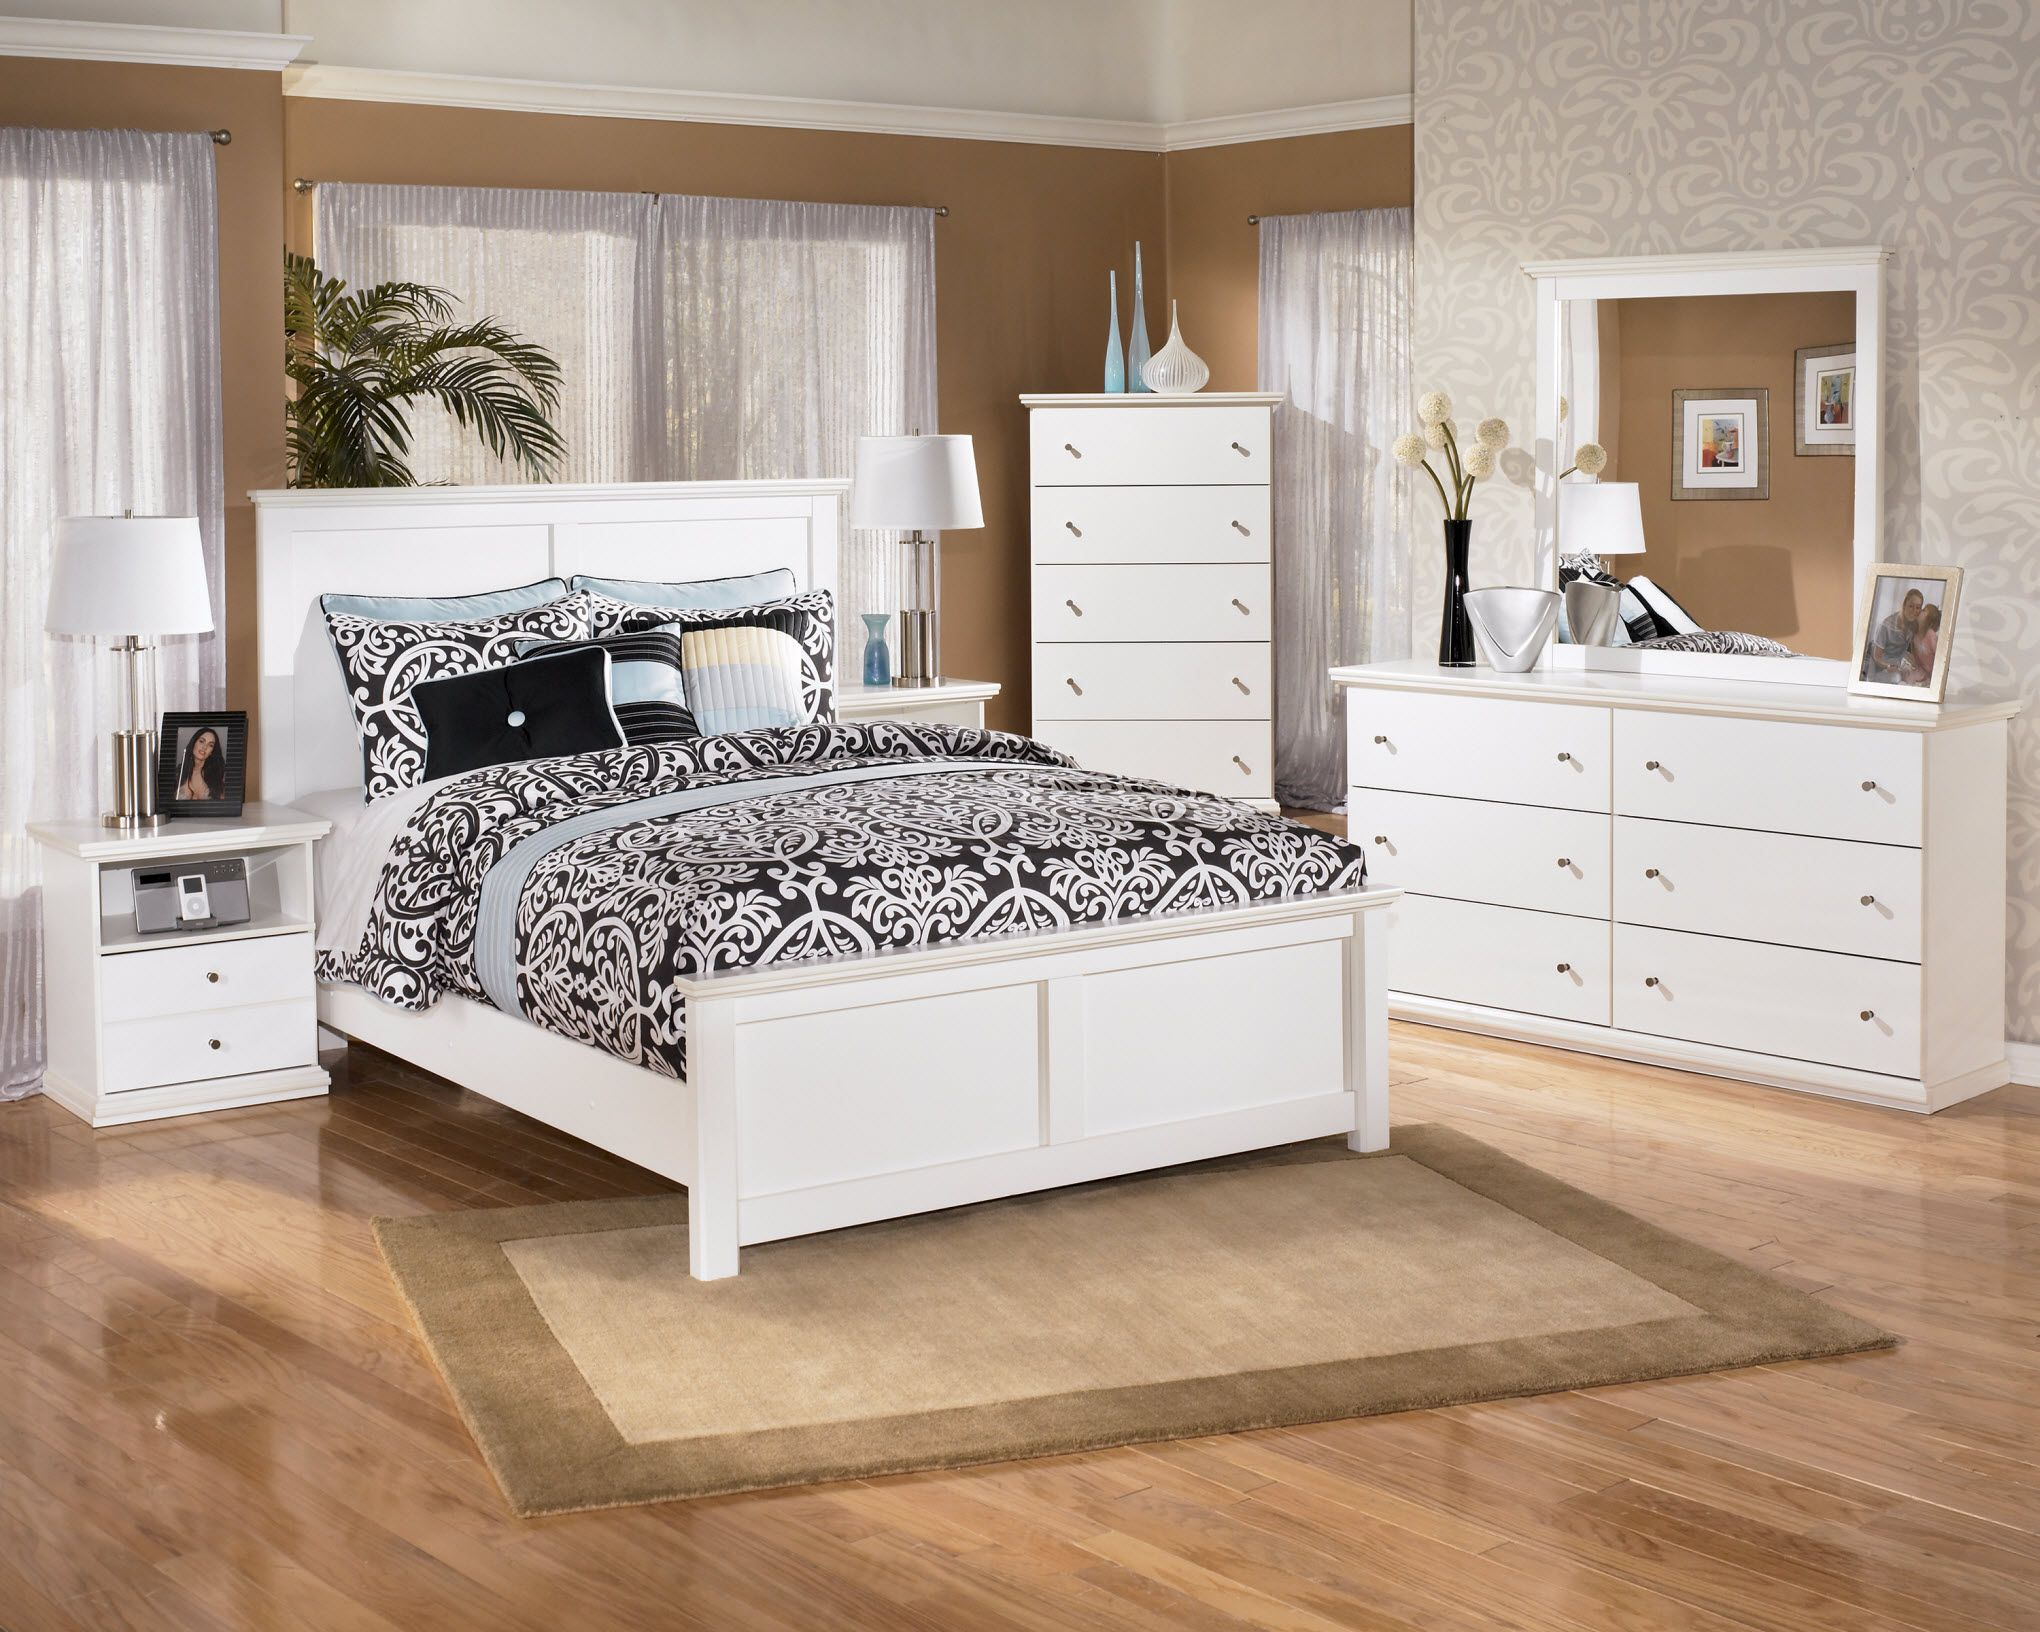 Wonderful Bedroom Design Furniture Sets King (2040×1632)